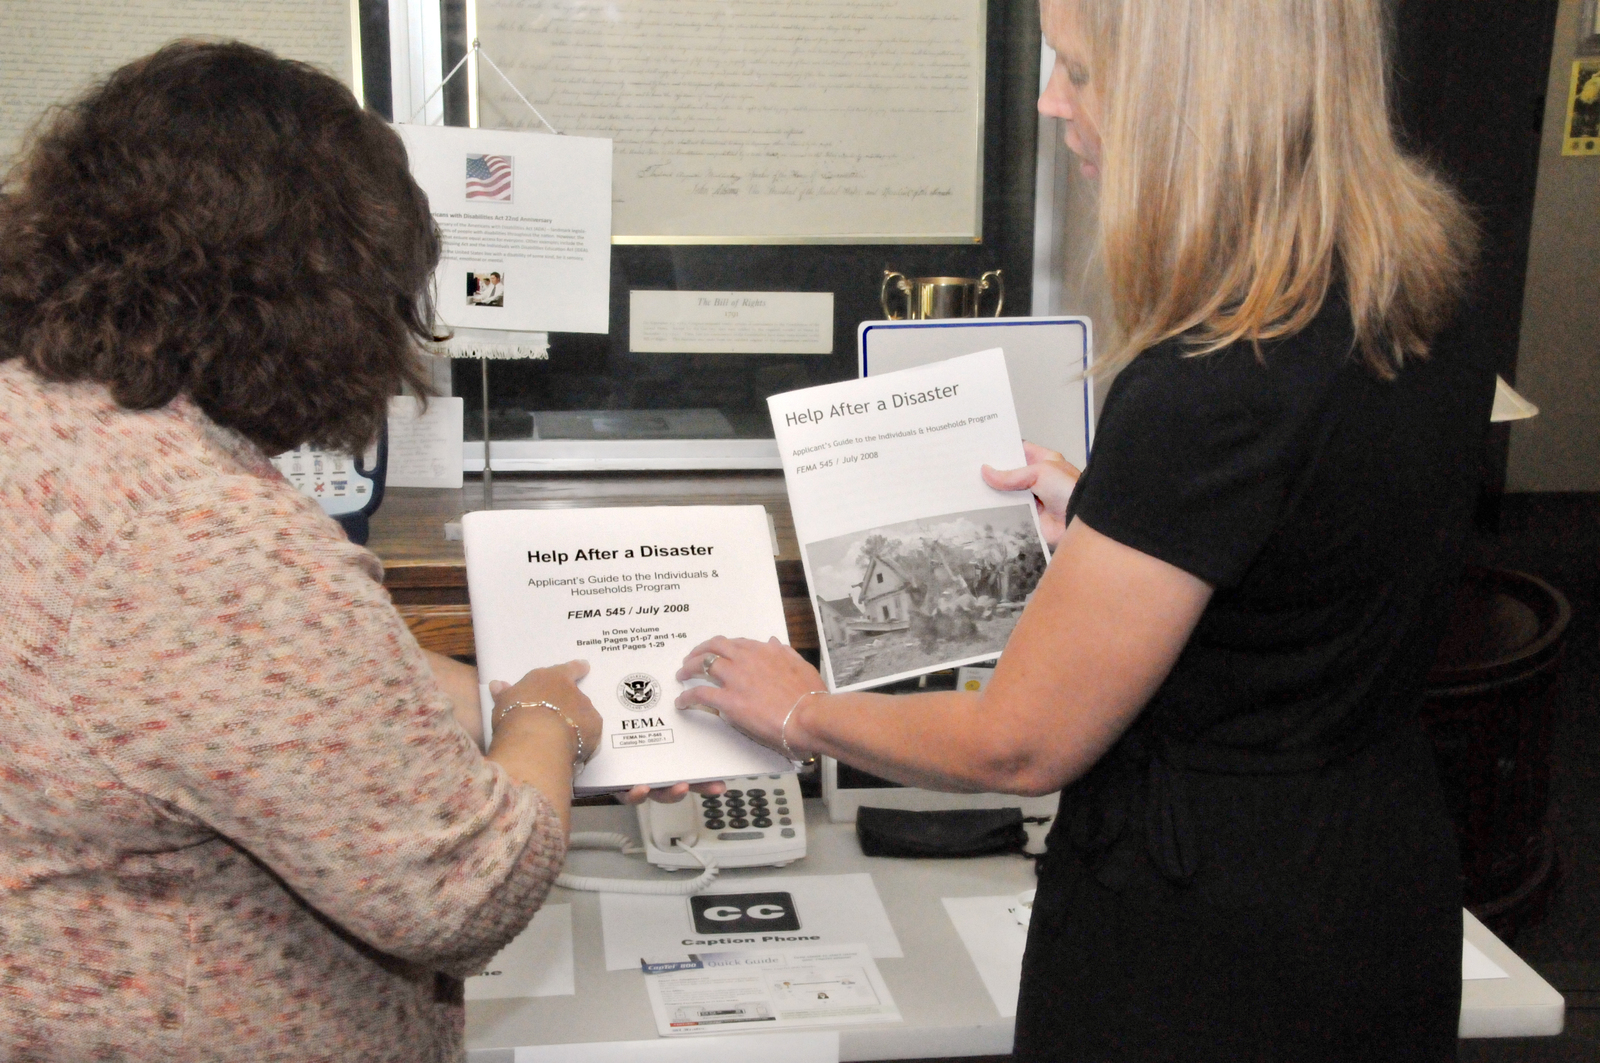 """Denton, Texas, July 26, 2012 -- Today is the 22nd Anniversary of the Americans with Disabilities Act (ADA). Norma Reyes (left) and Stephanie Moffett (right) of FEMA Region 6 look at two versions of """"Help After A Disaster. """" The one on the left--even though it has printing on it--is the Braille version. FEMA/Earl Armstrong"""